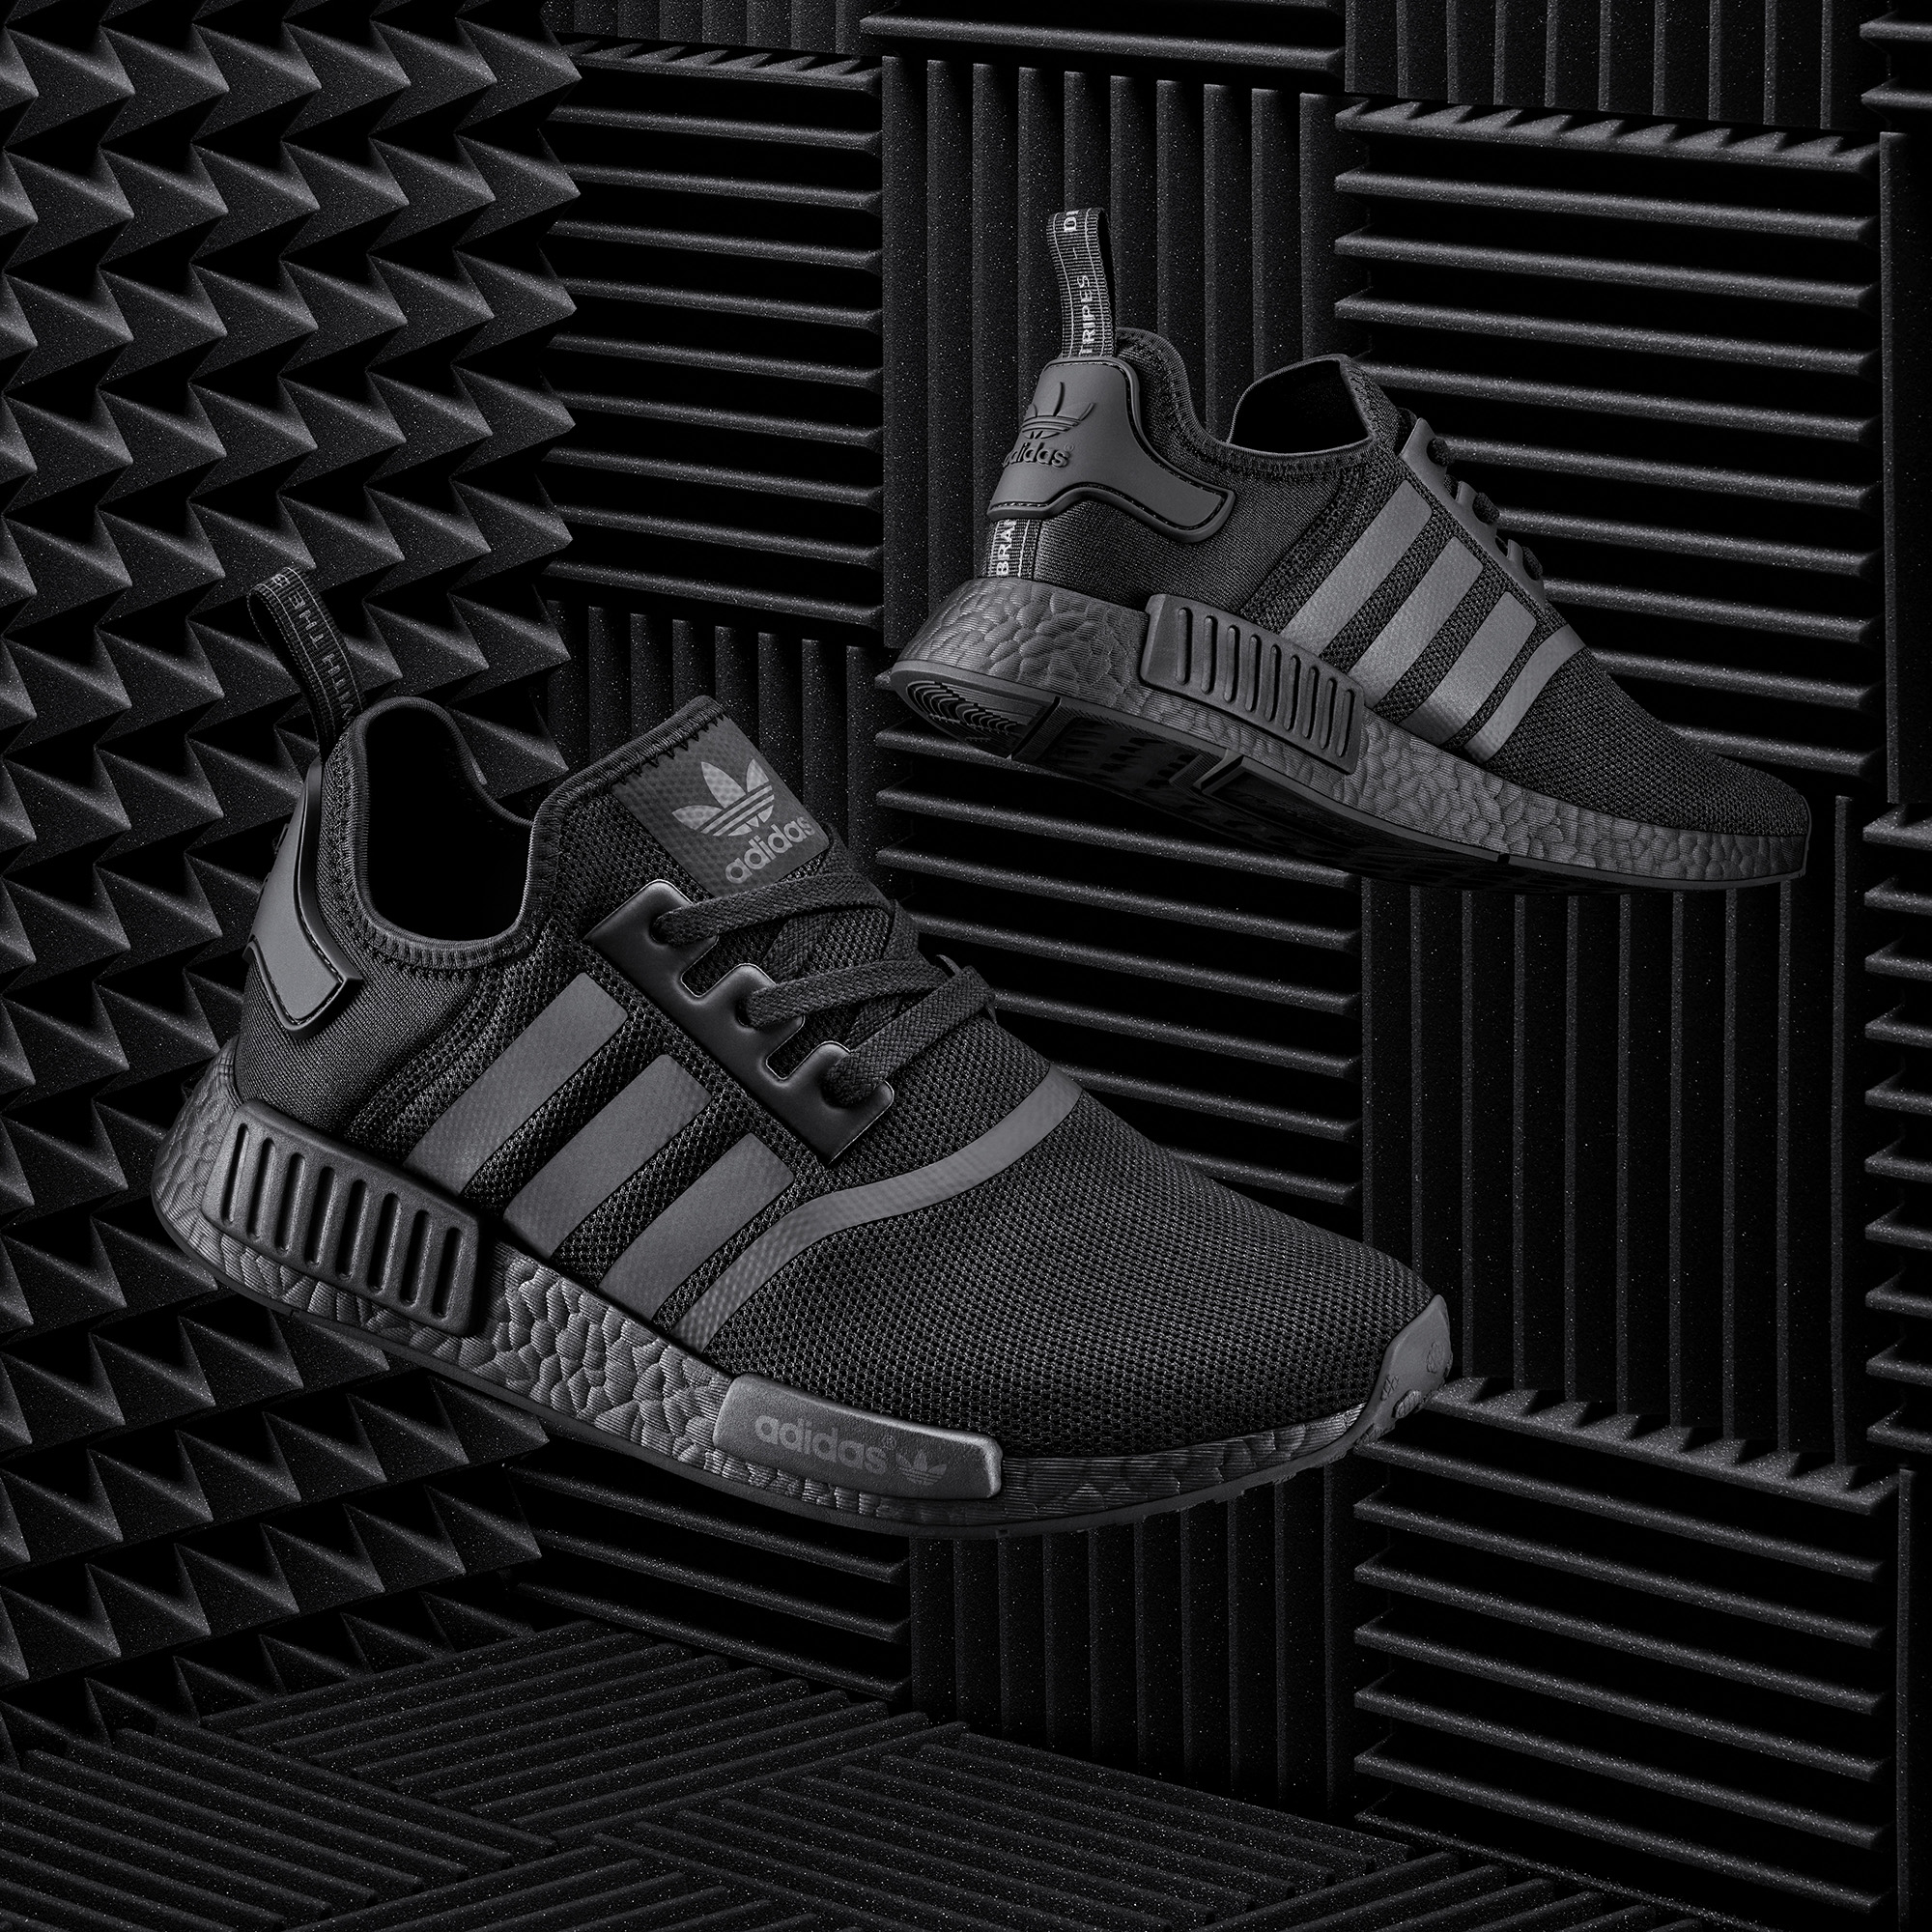 Adidas Nmd Triple Black And Red Color Boost Pack Soleracks